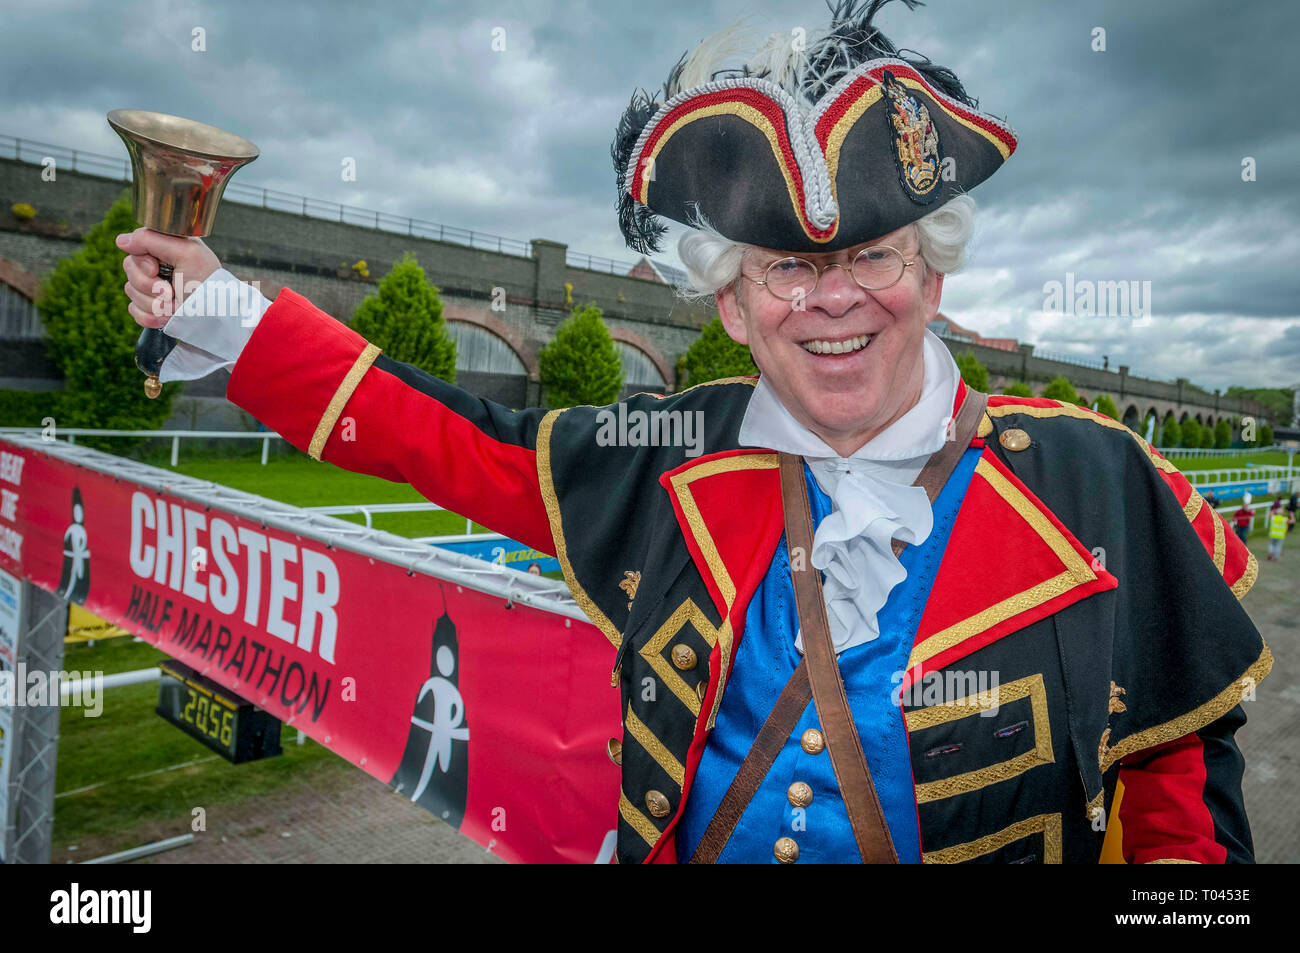 David Mitchell is the Town Crier of Chester - Stock Image